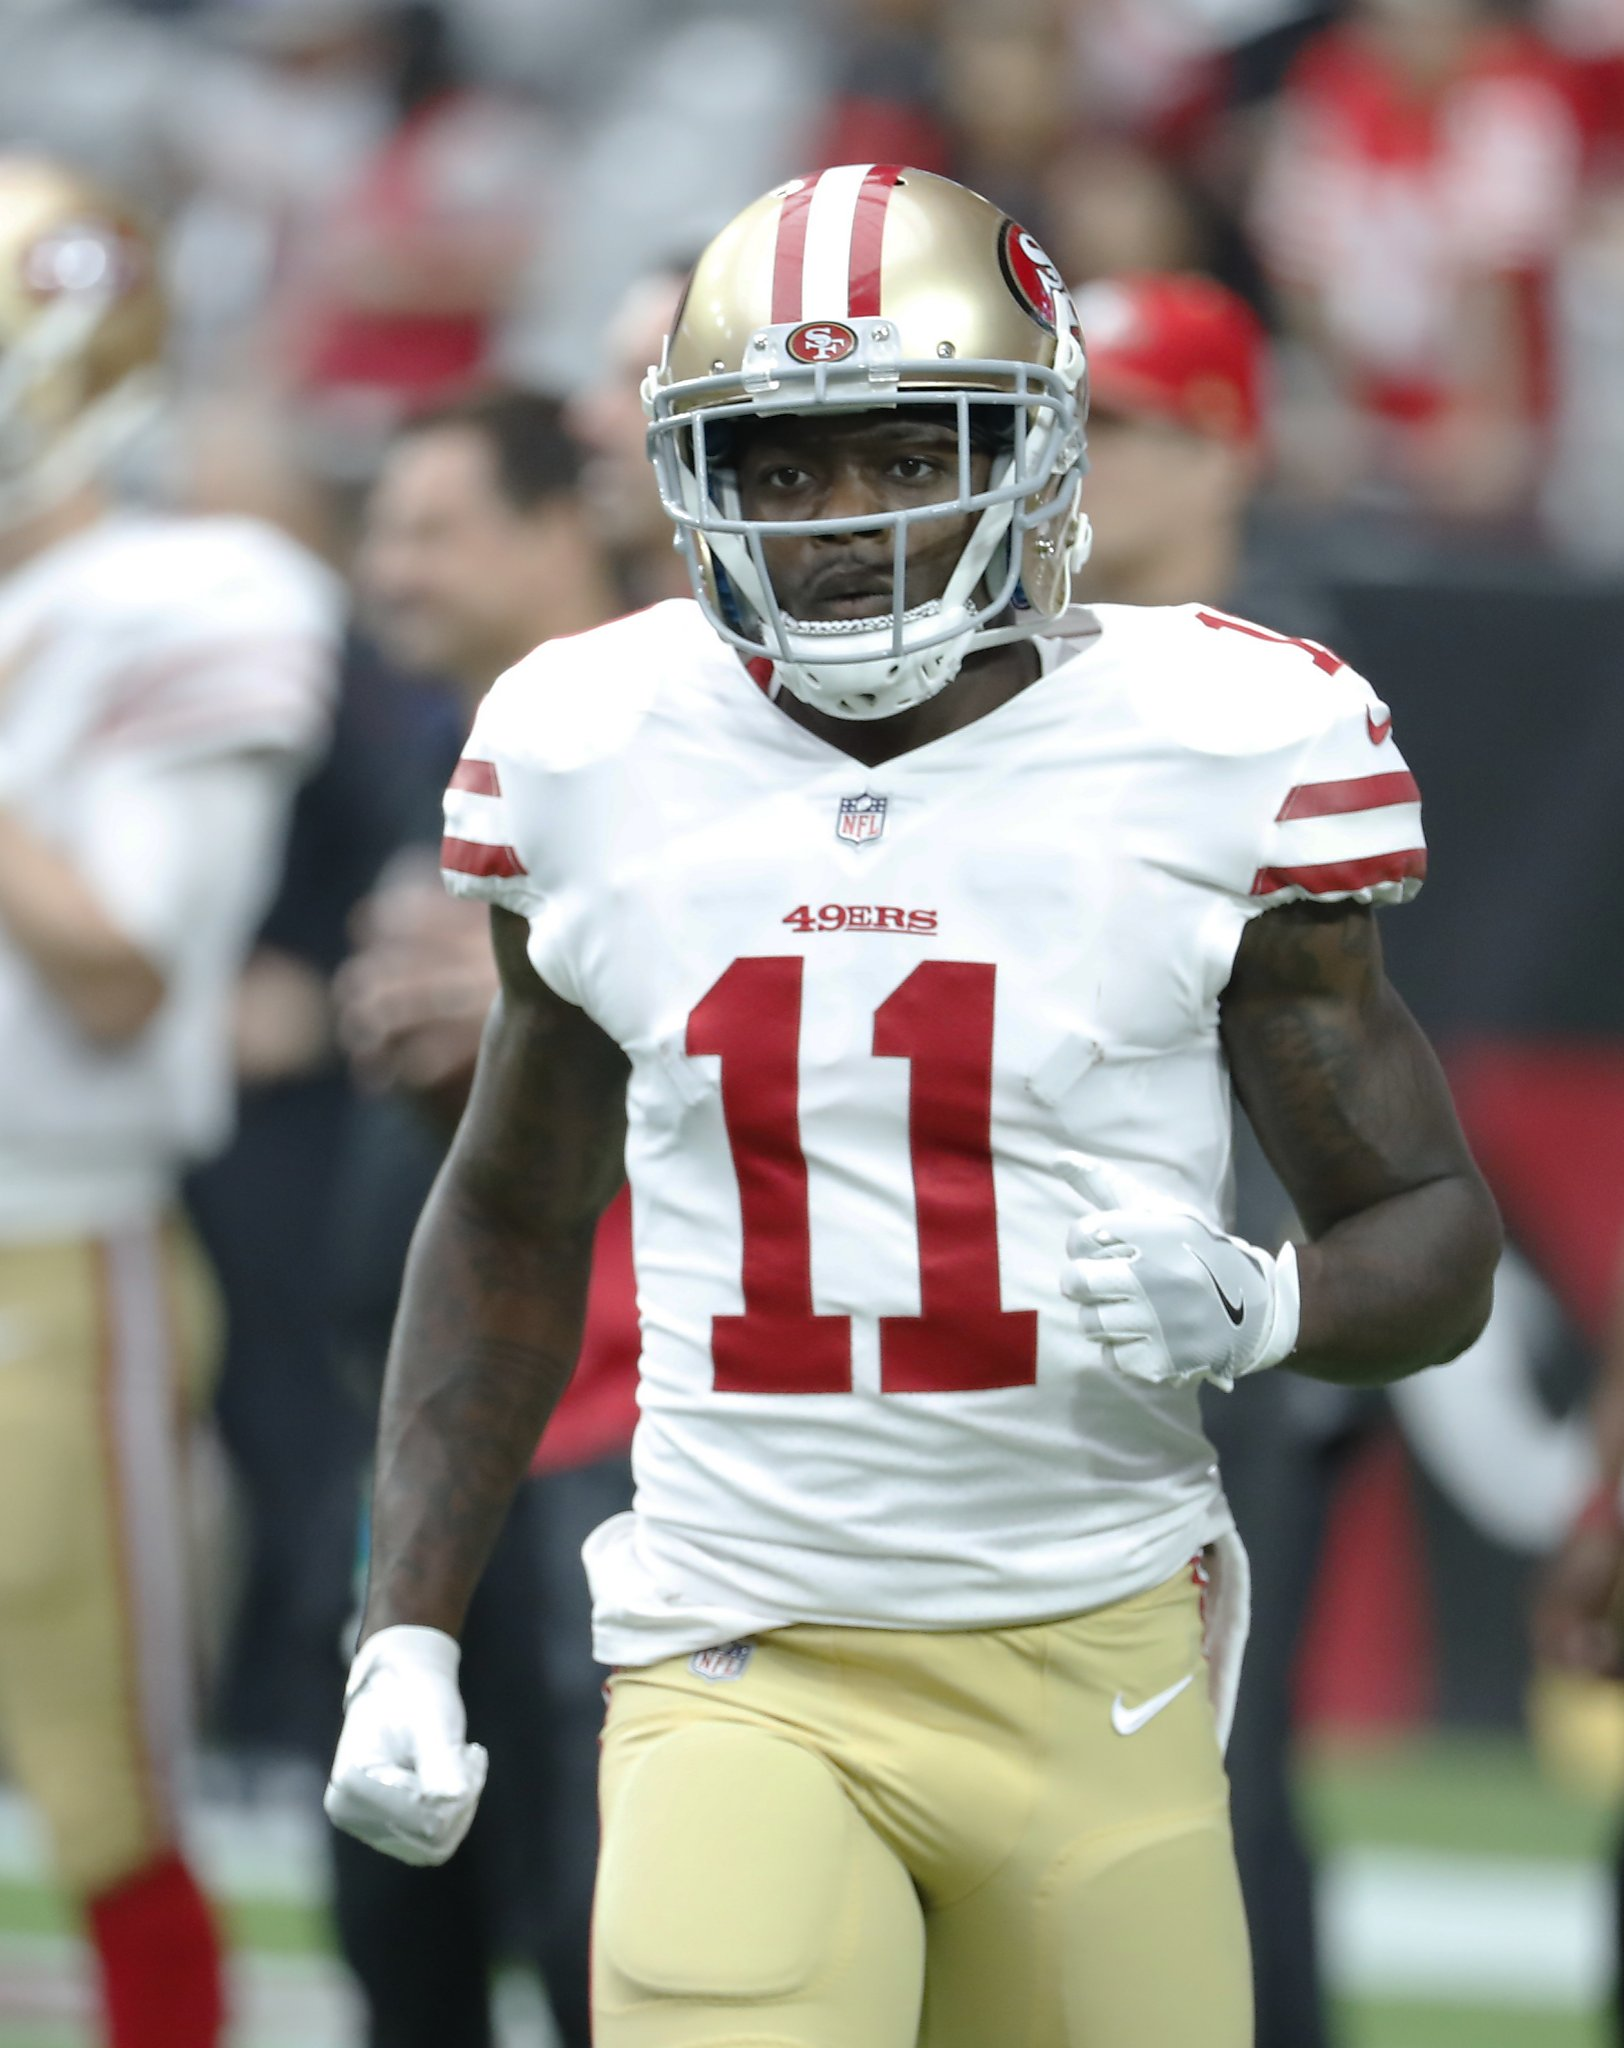 162f517f84c 49ers WR Goodwin s latest concussion is fourth in less than 14 months -  SFGate